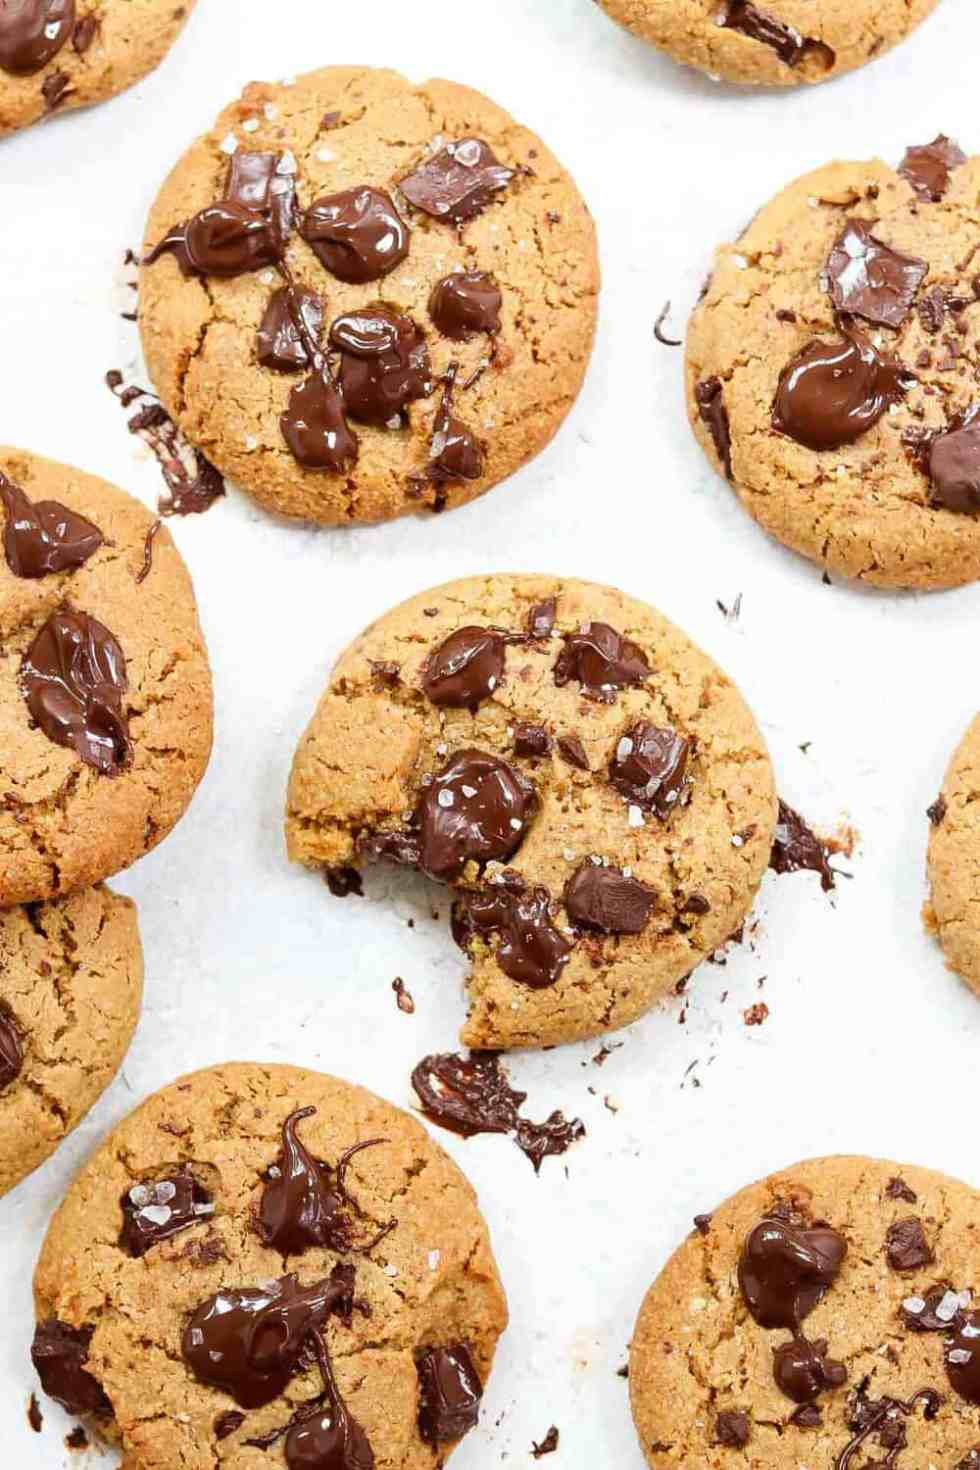 Cookies on a white backdrop with melted chocolate around the edges.